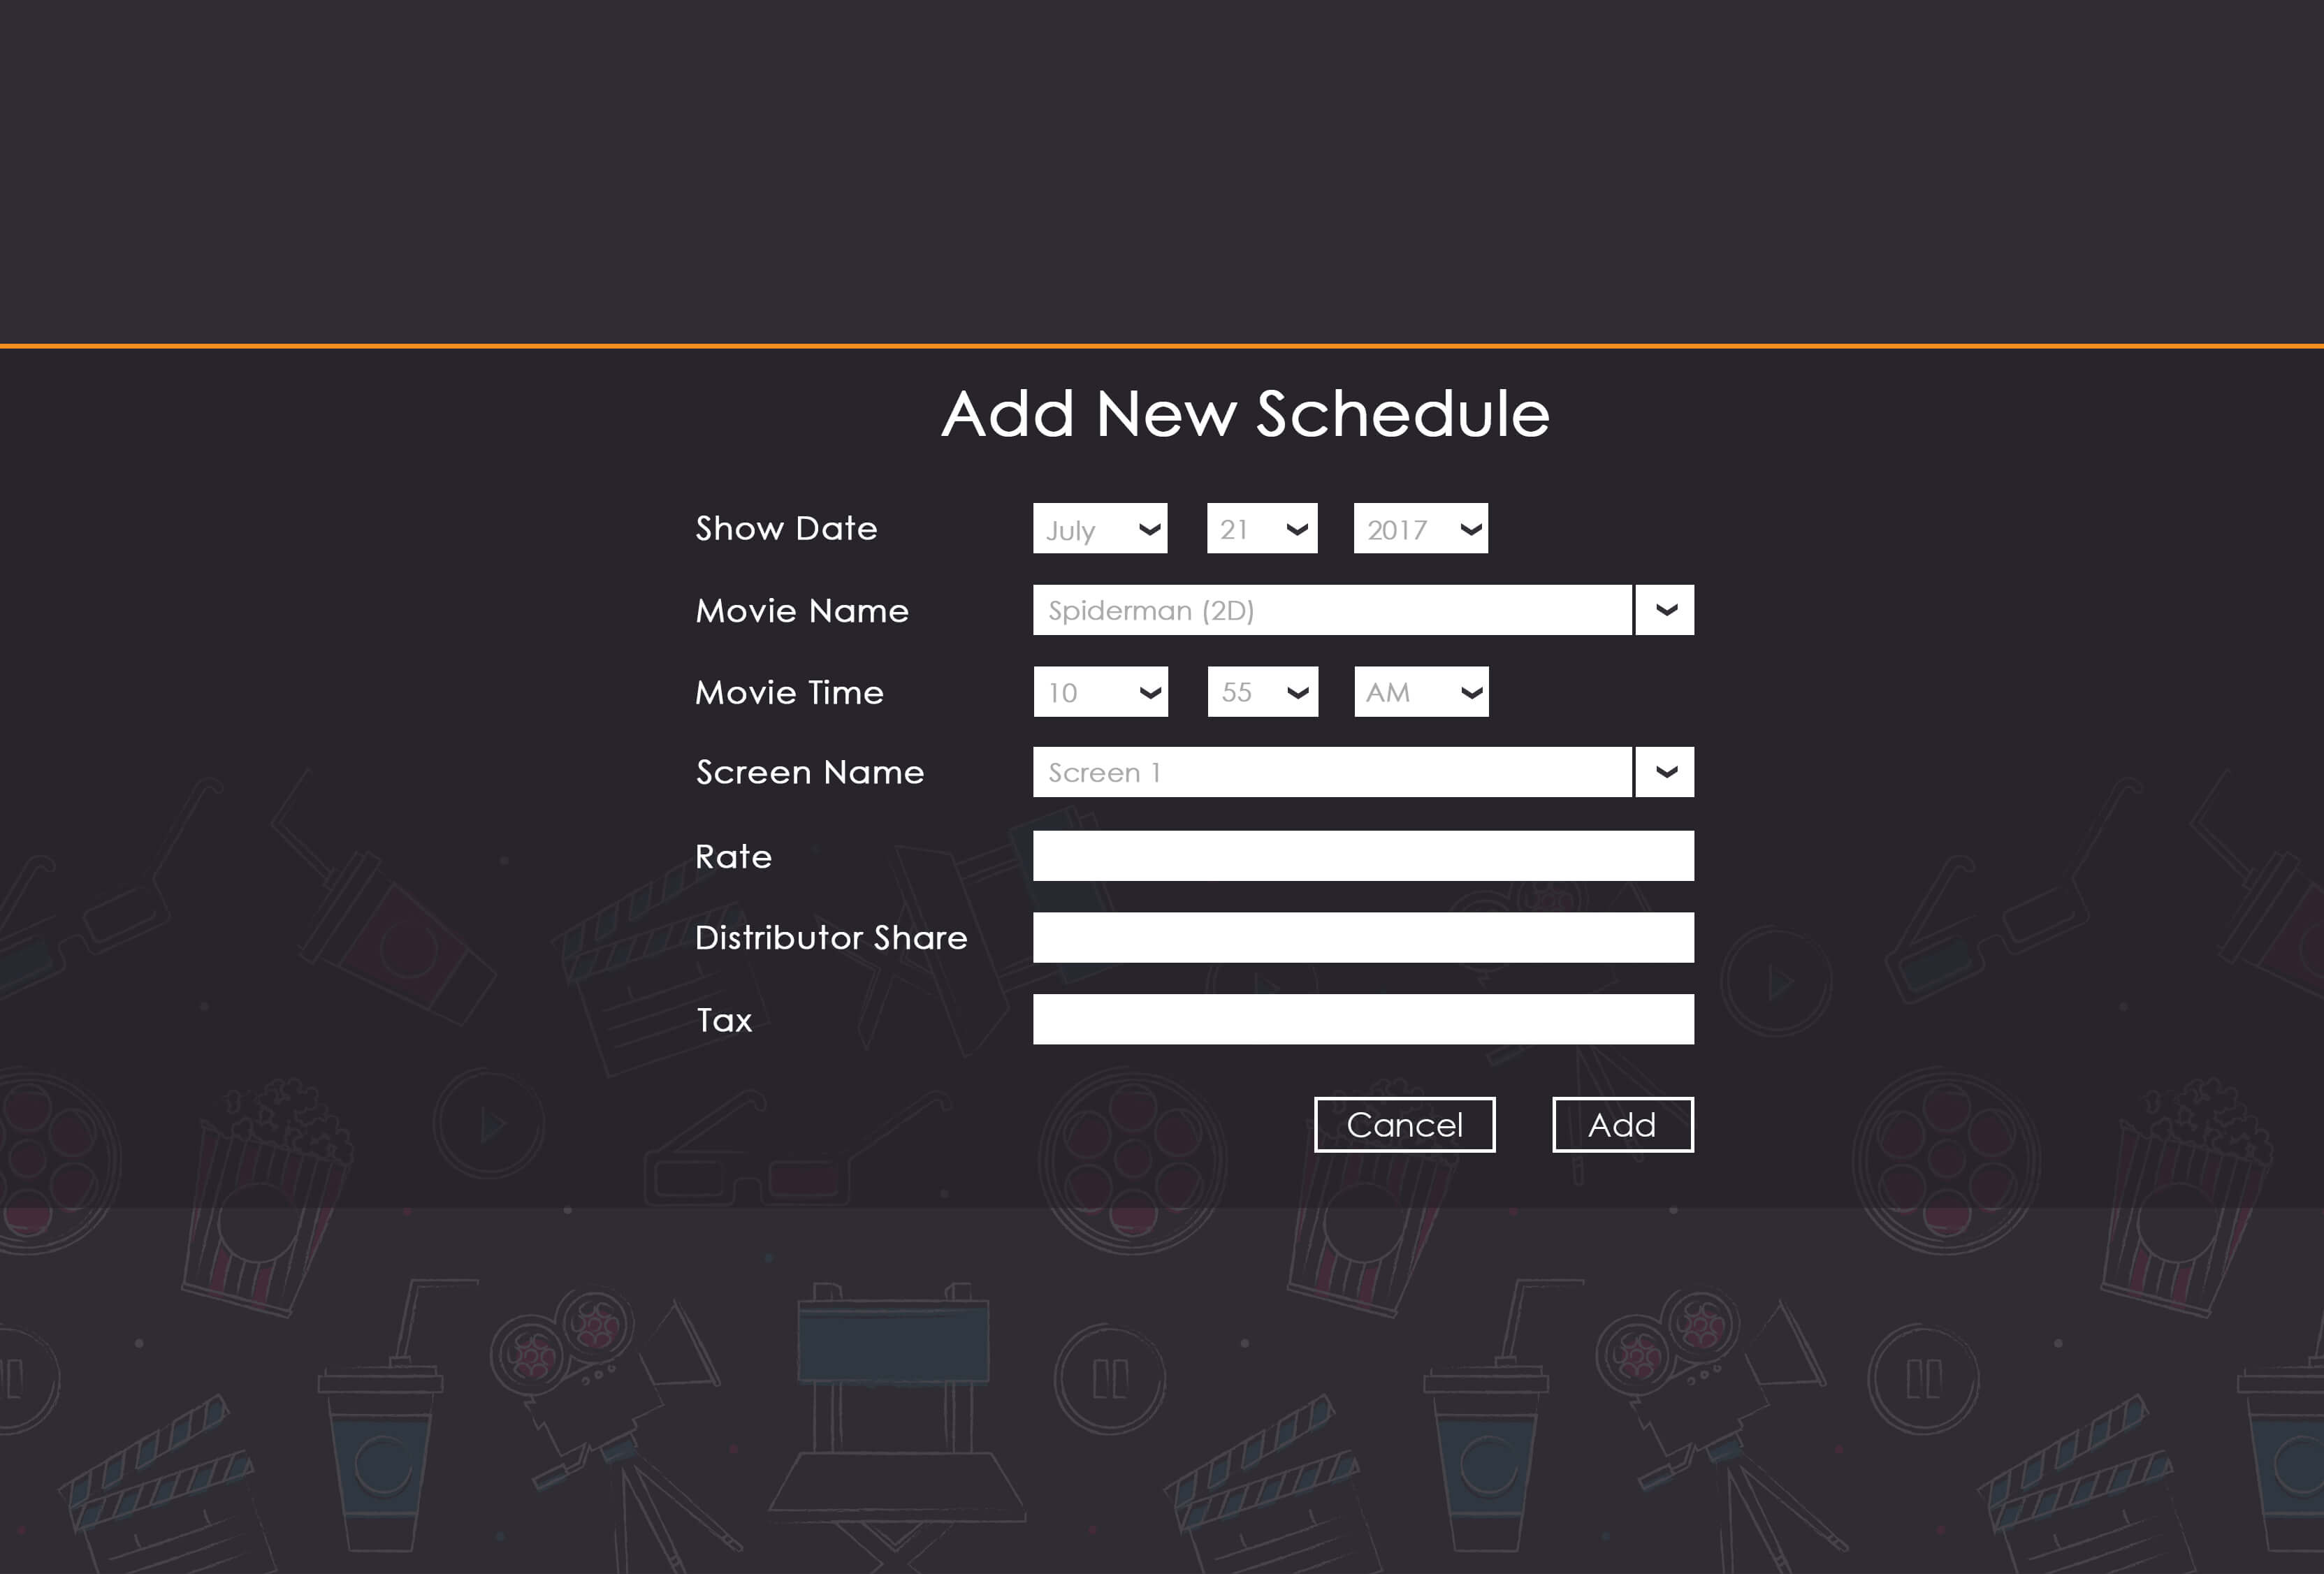 Add-New-Schedule-Screen